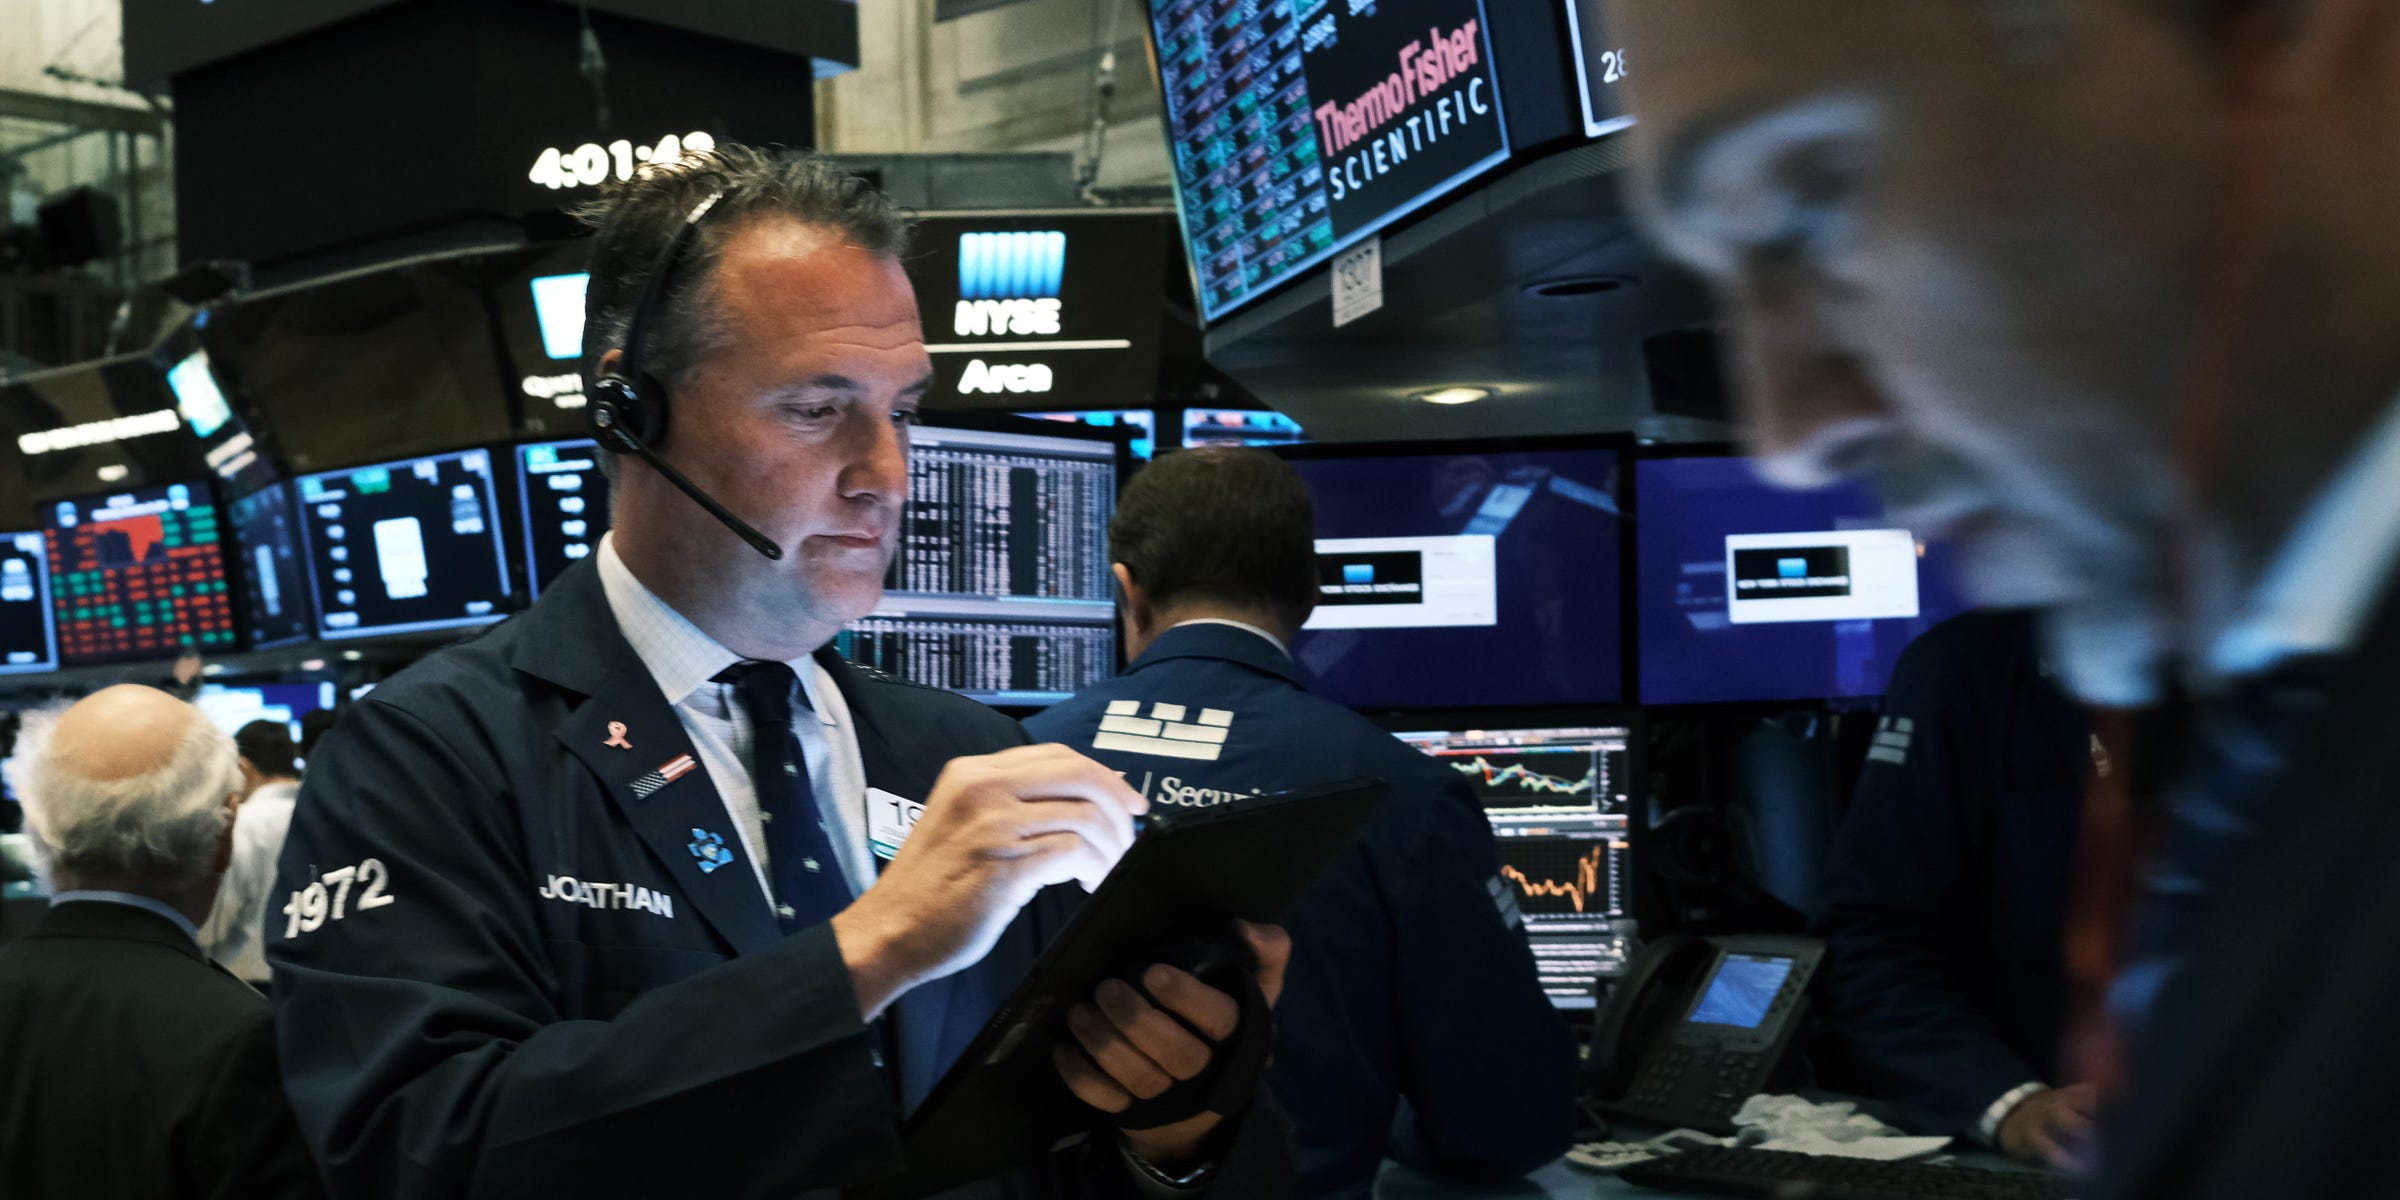 Traders work on the floor of the New York Stock Exchange (NYSE) on November 20, 2019 in New York City